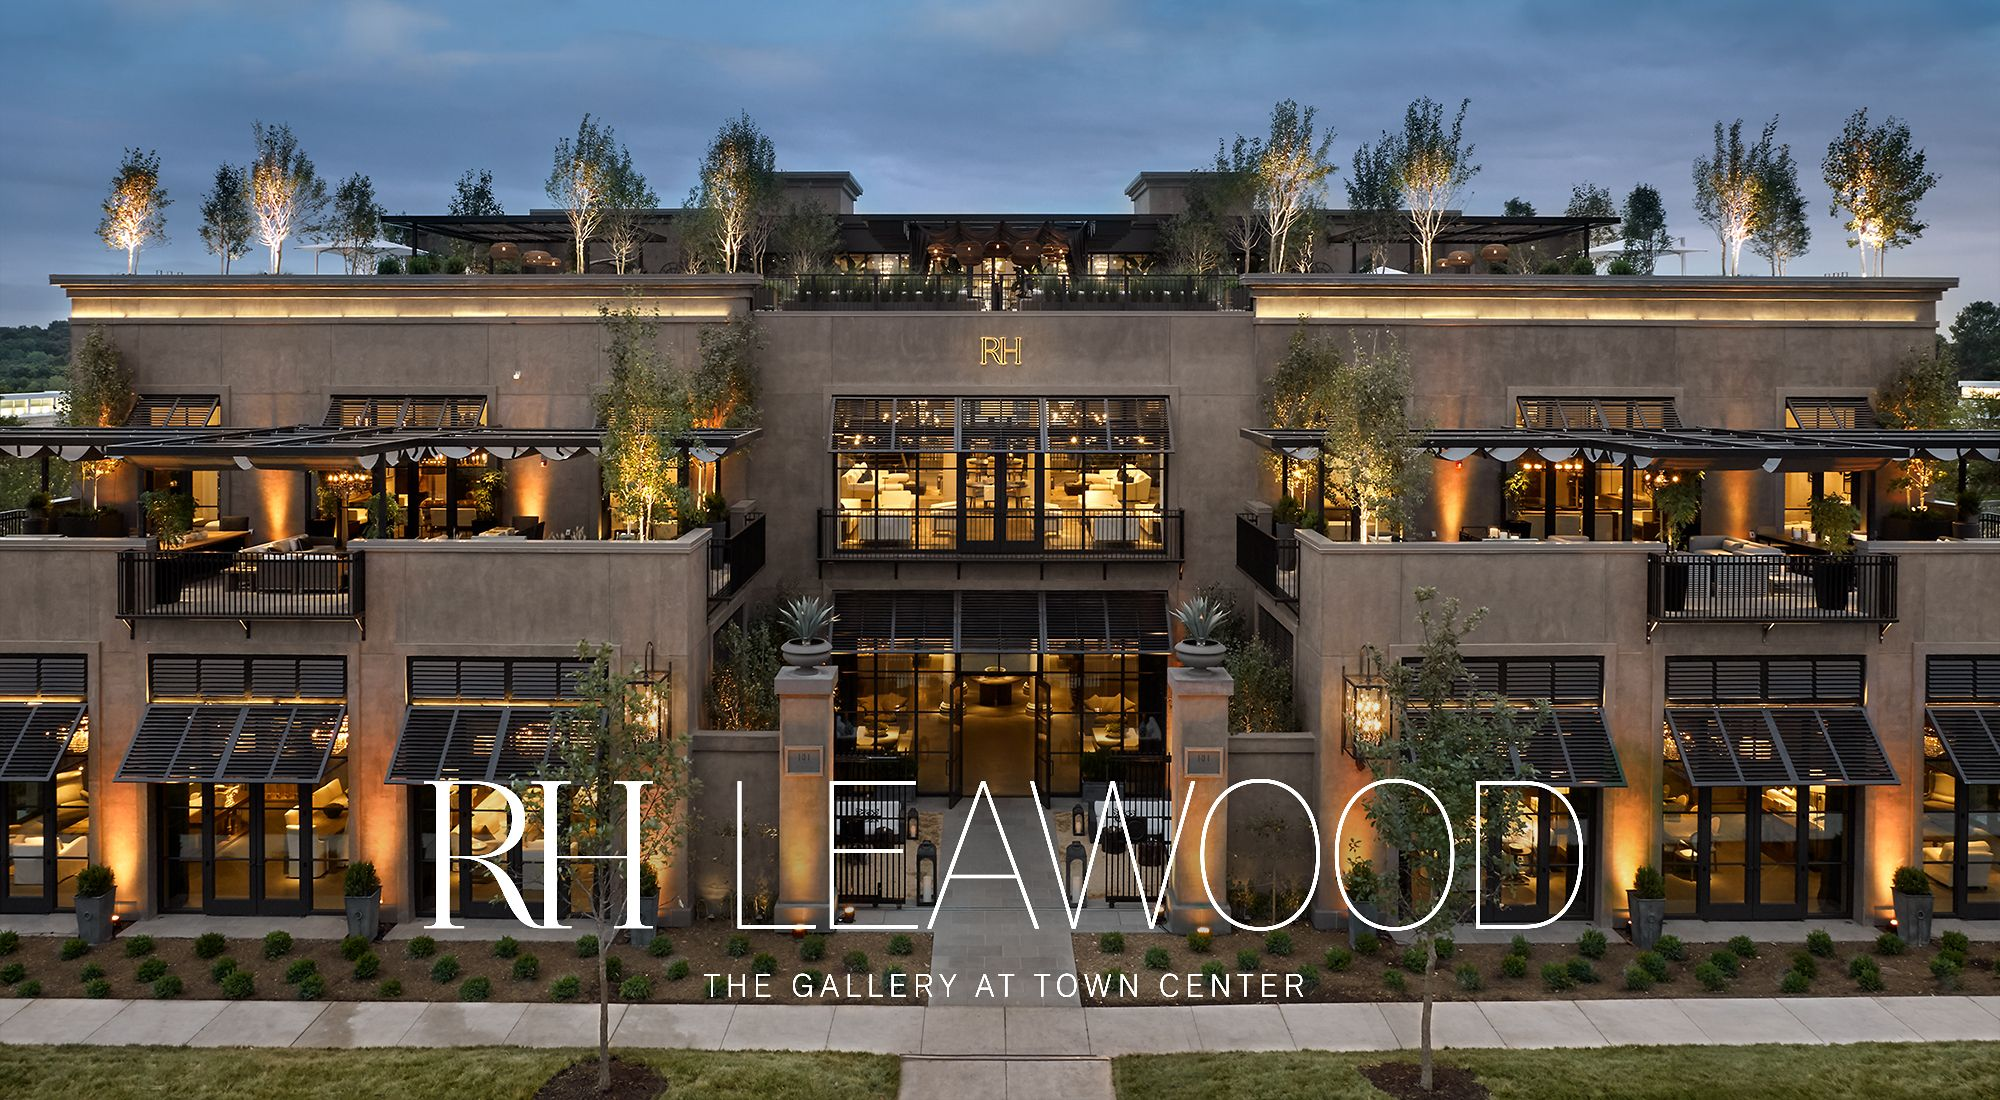 Rh Leawood The Gallery At Town Center